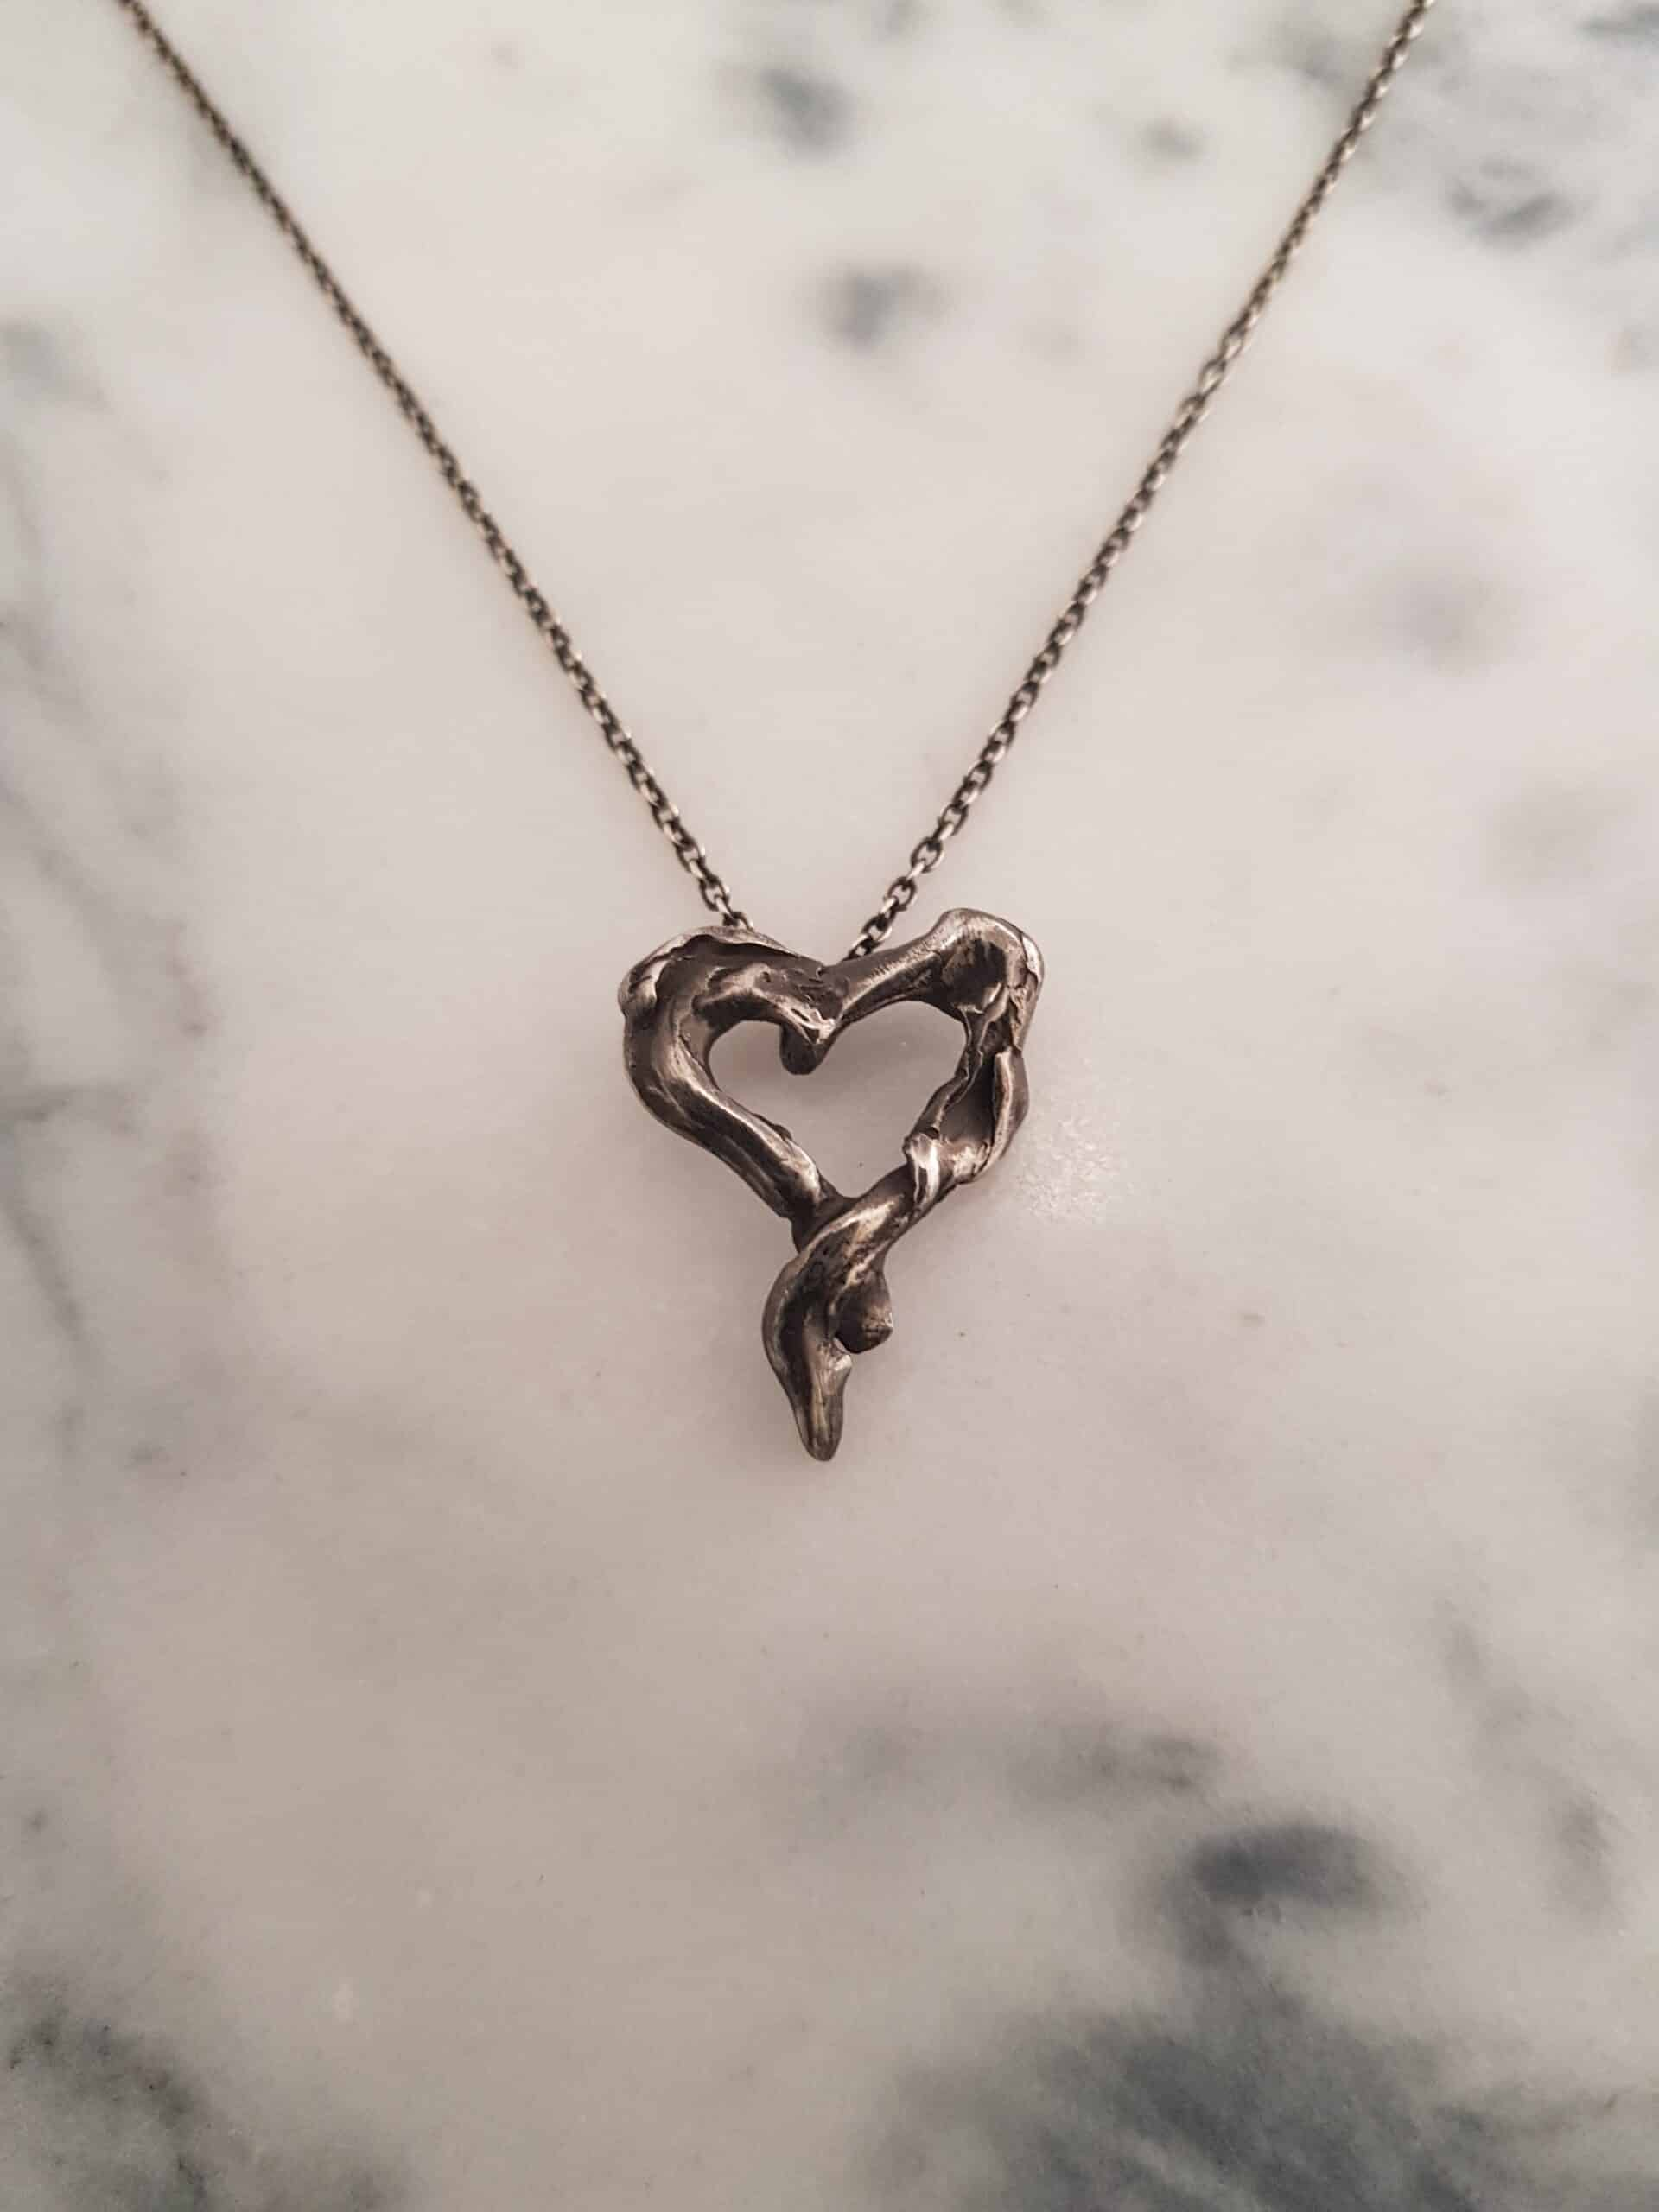 Oxidized Twisted Silver Heart Pendant By Corinne Lomon